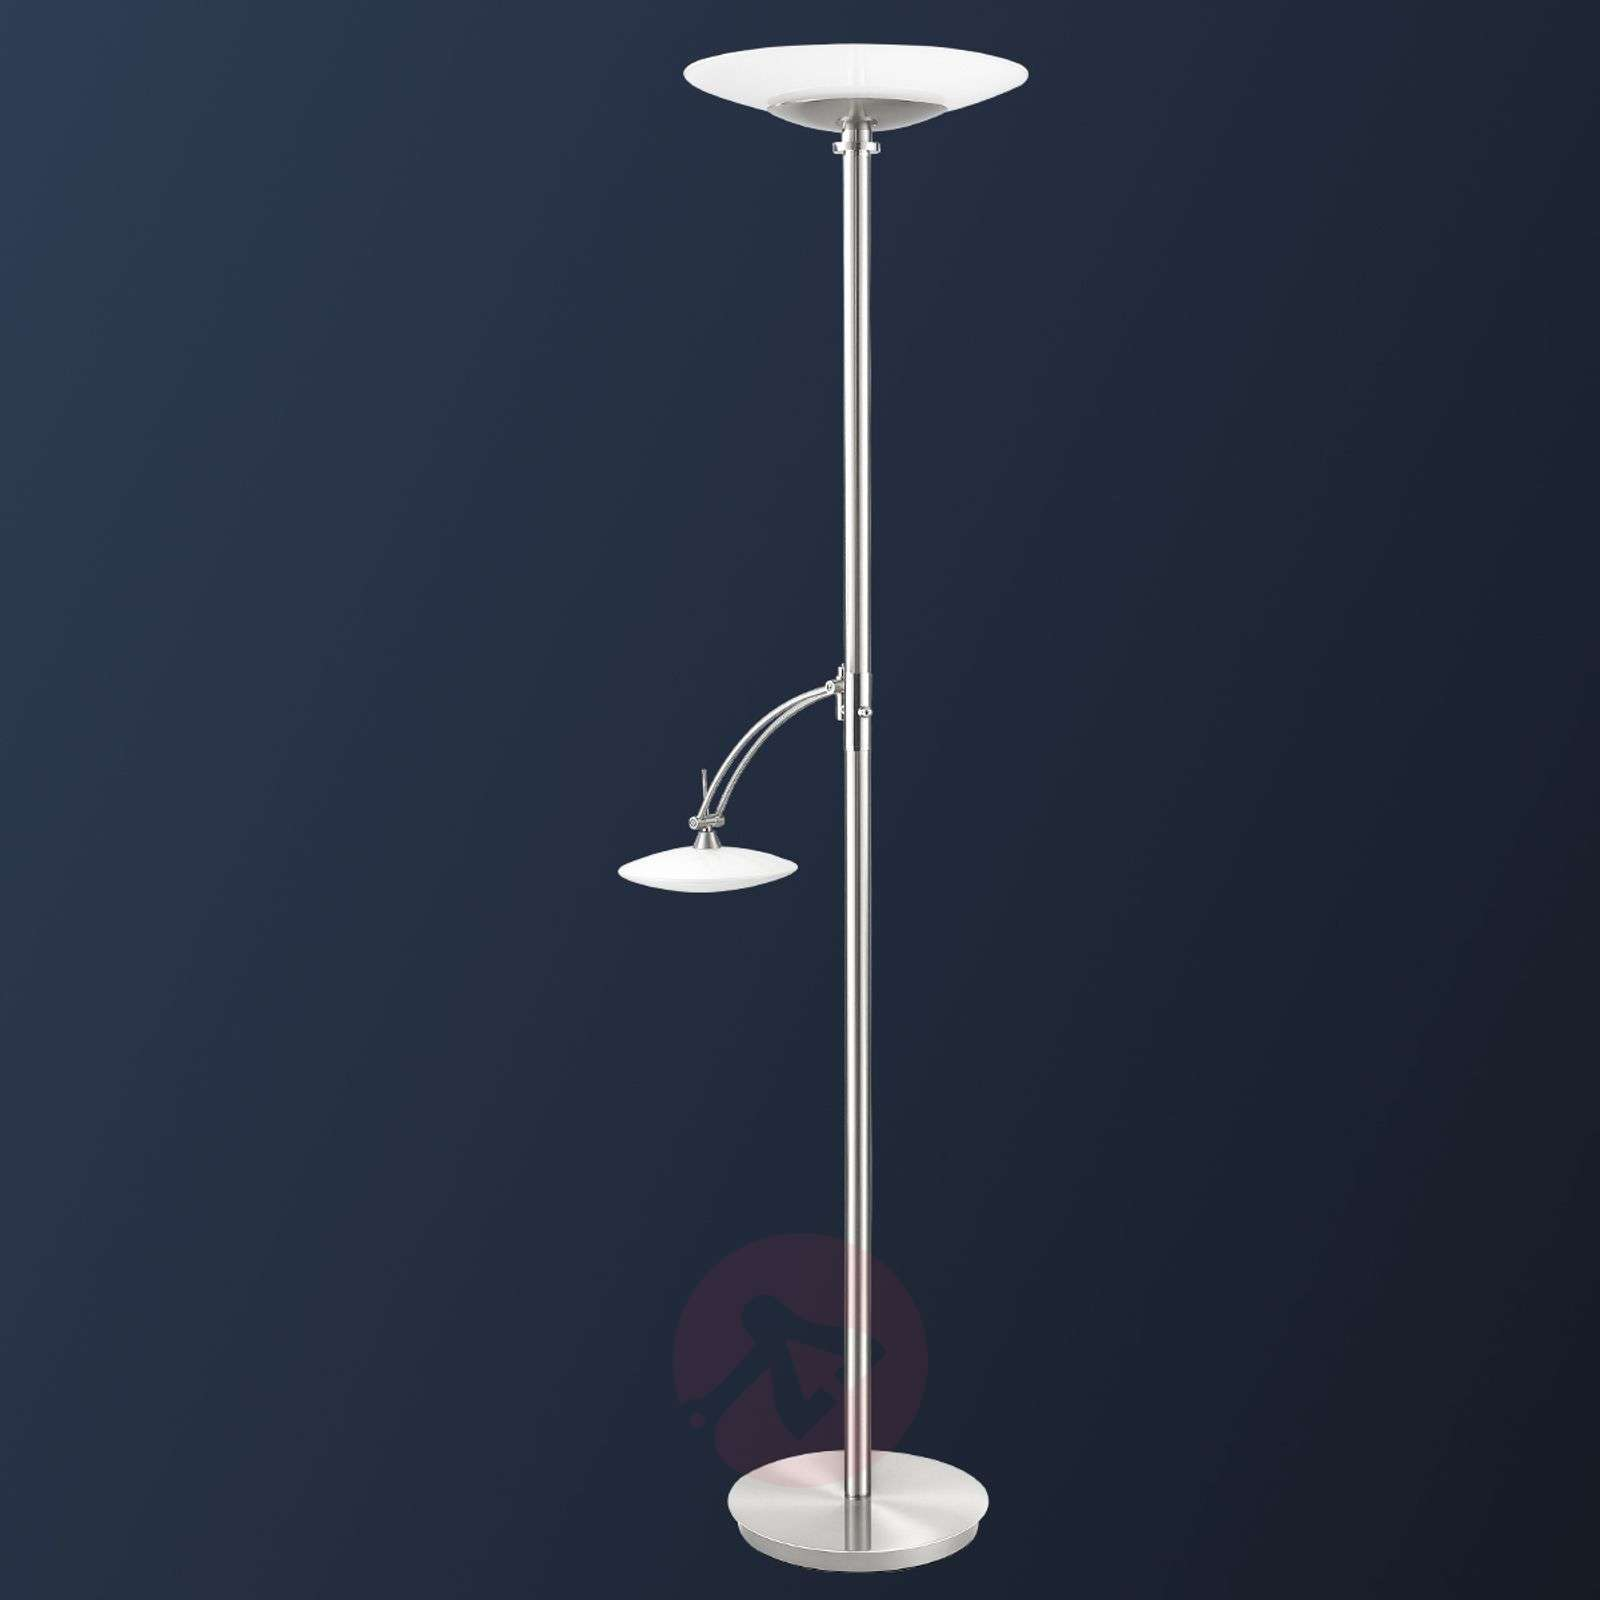 Two bulb new elina nickel led floor lamp lights two bulb new elina nickel led floor lamp 8504795 01 aloadofball Image collections